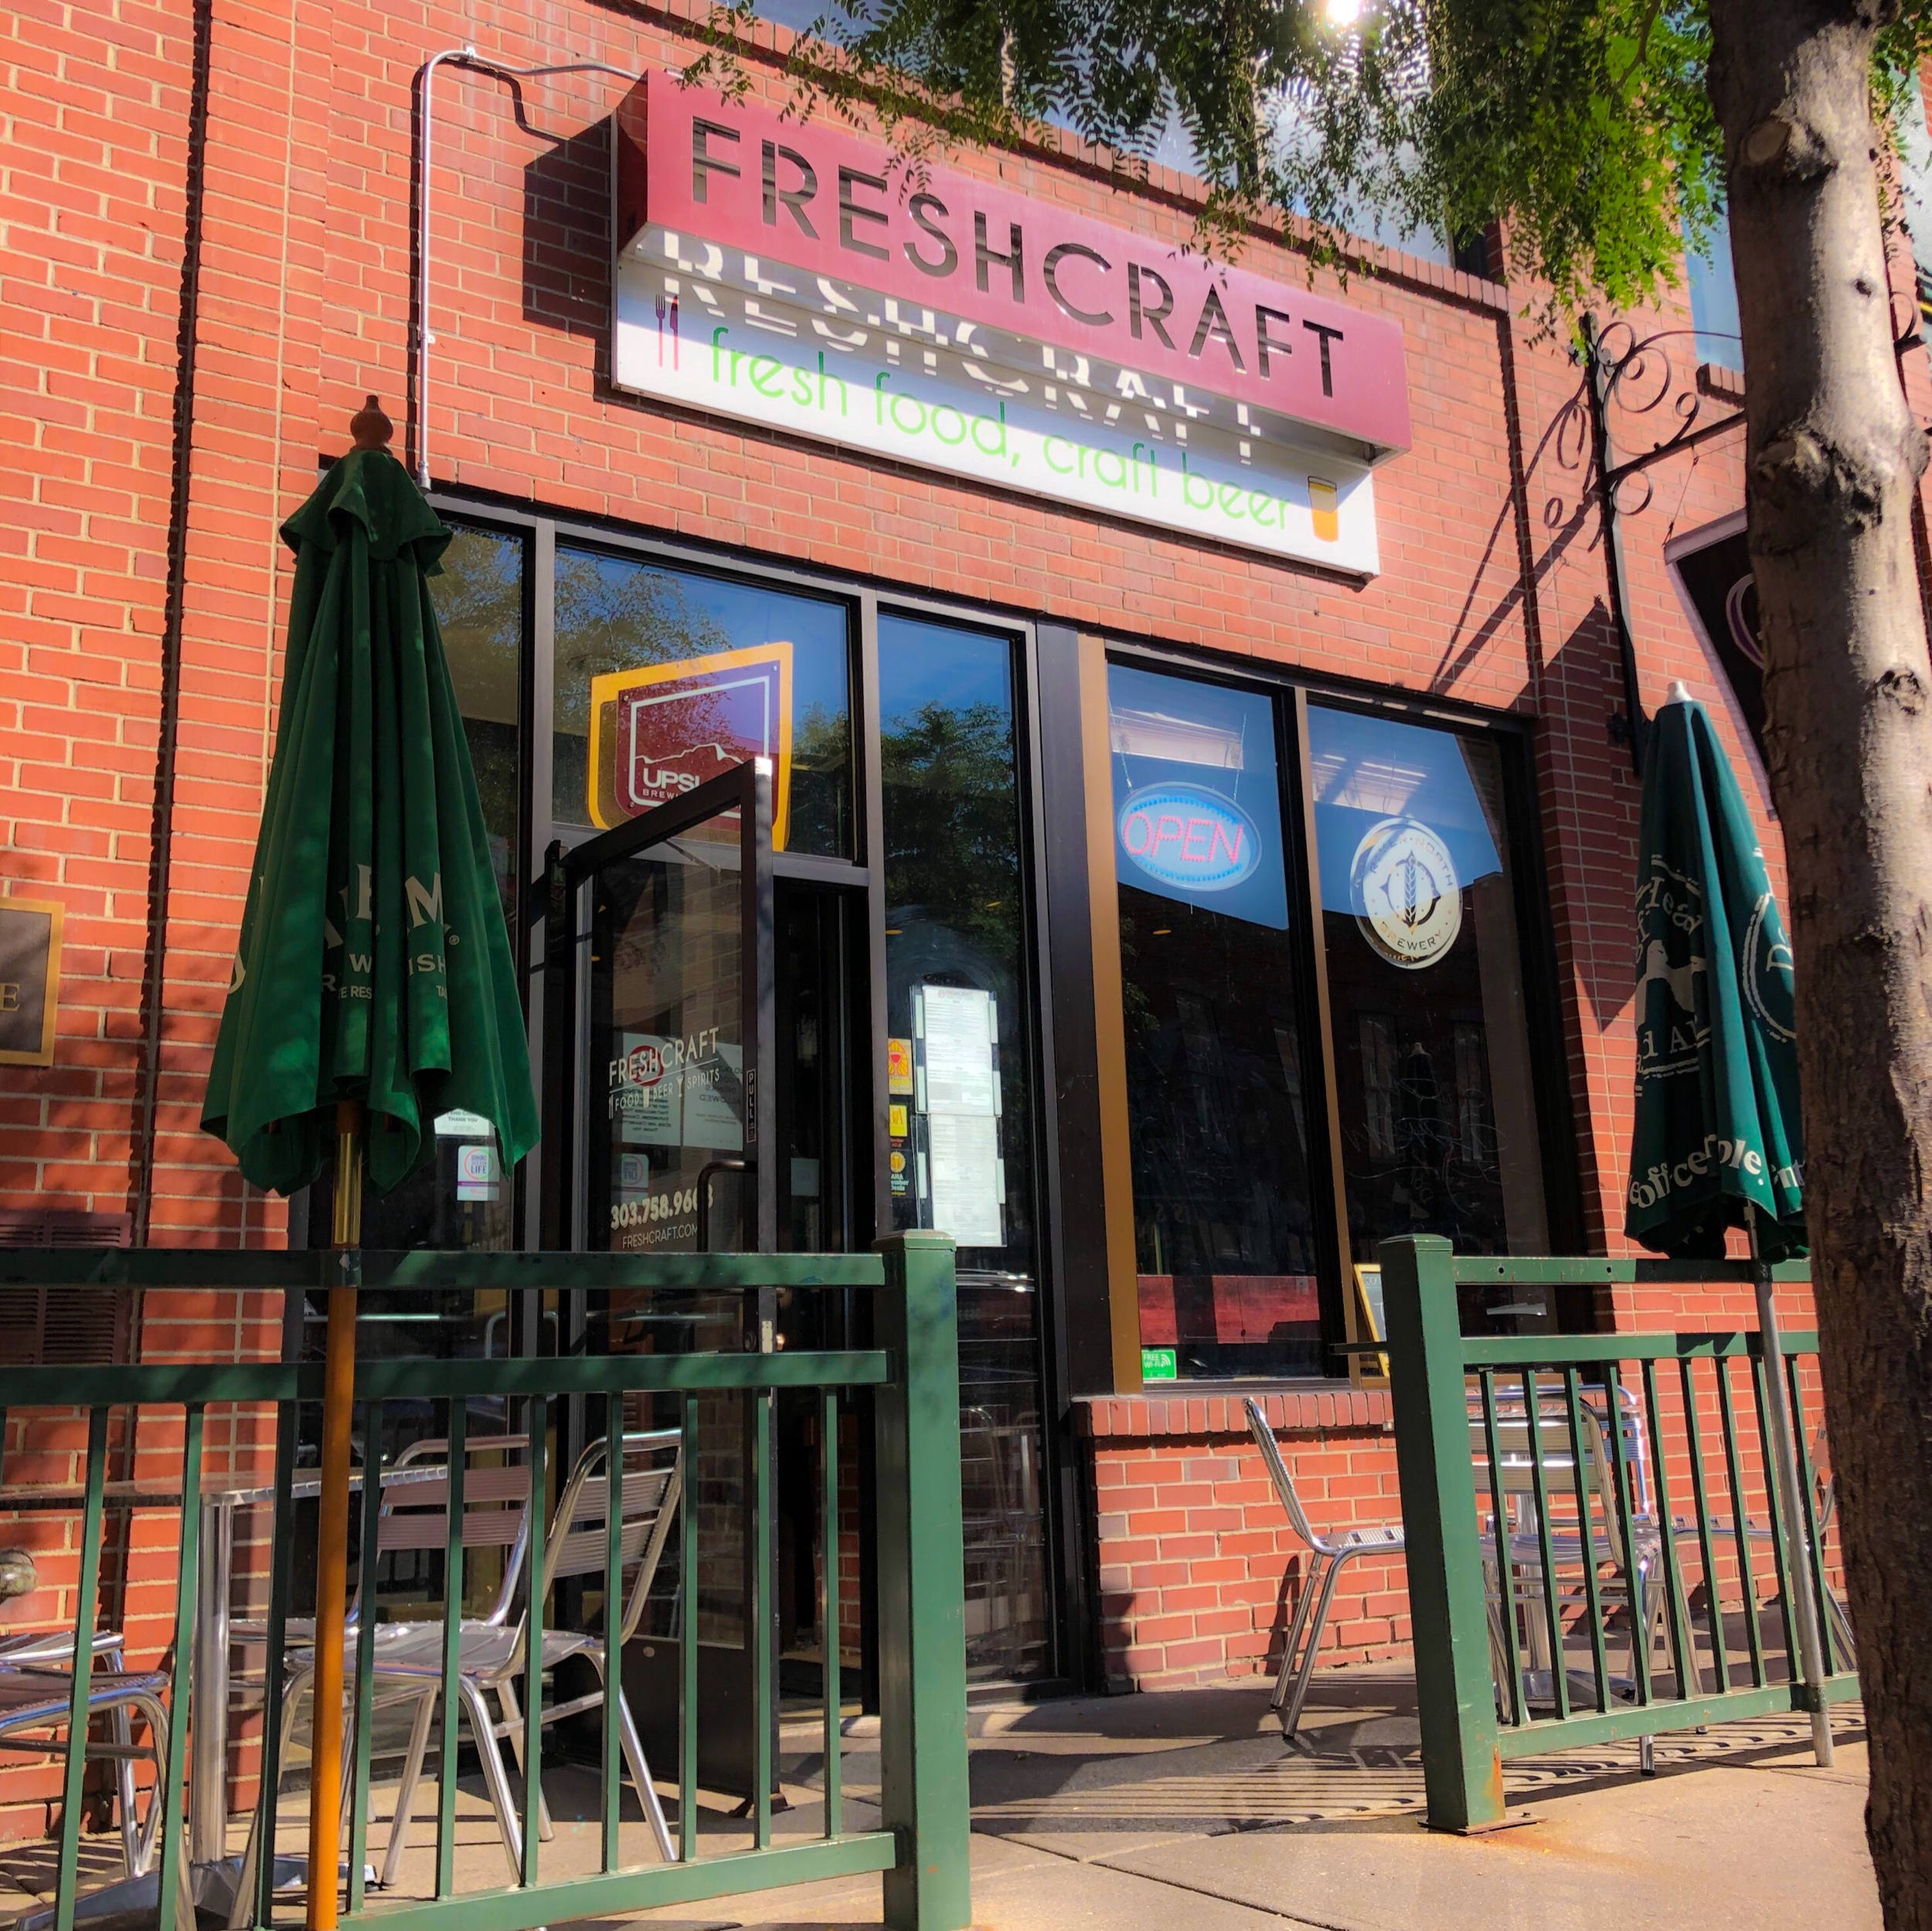 Sidewalk seating at Freshcraft to soak up the Colorado rays. © Suzanne Brown